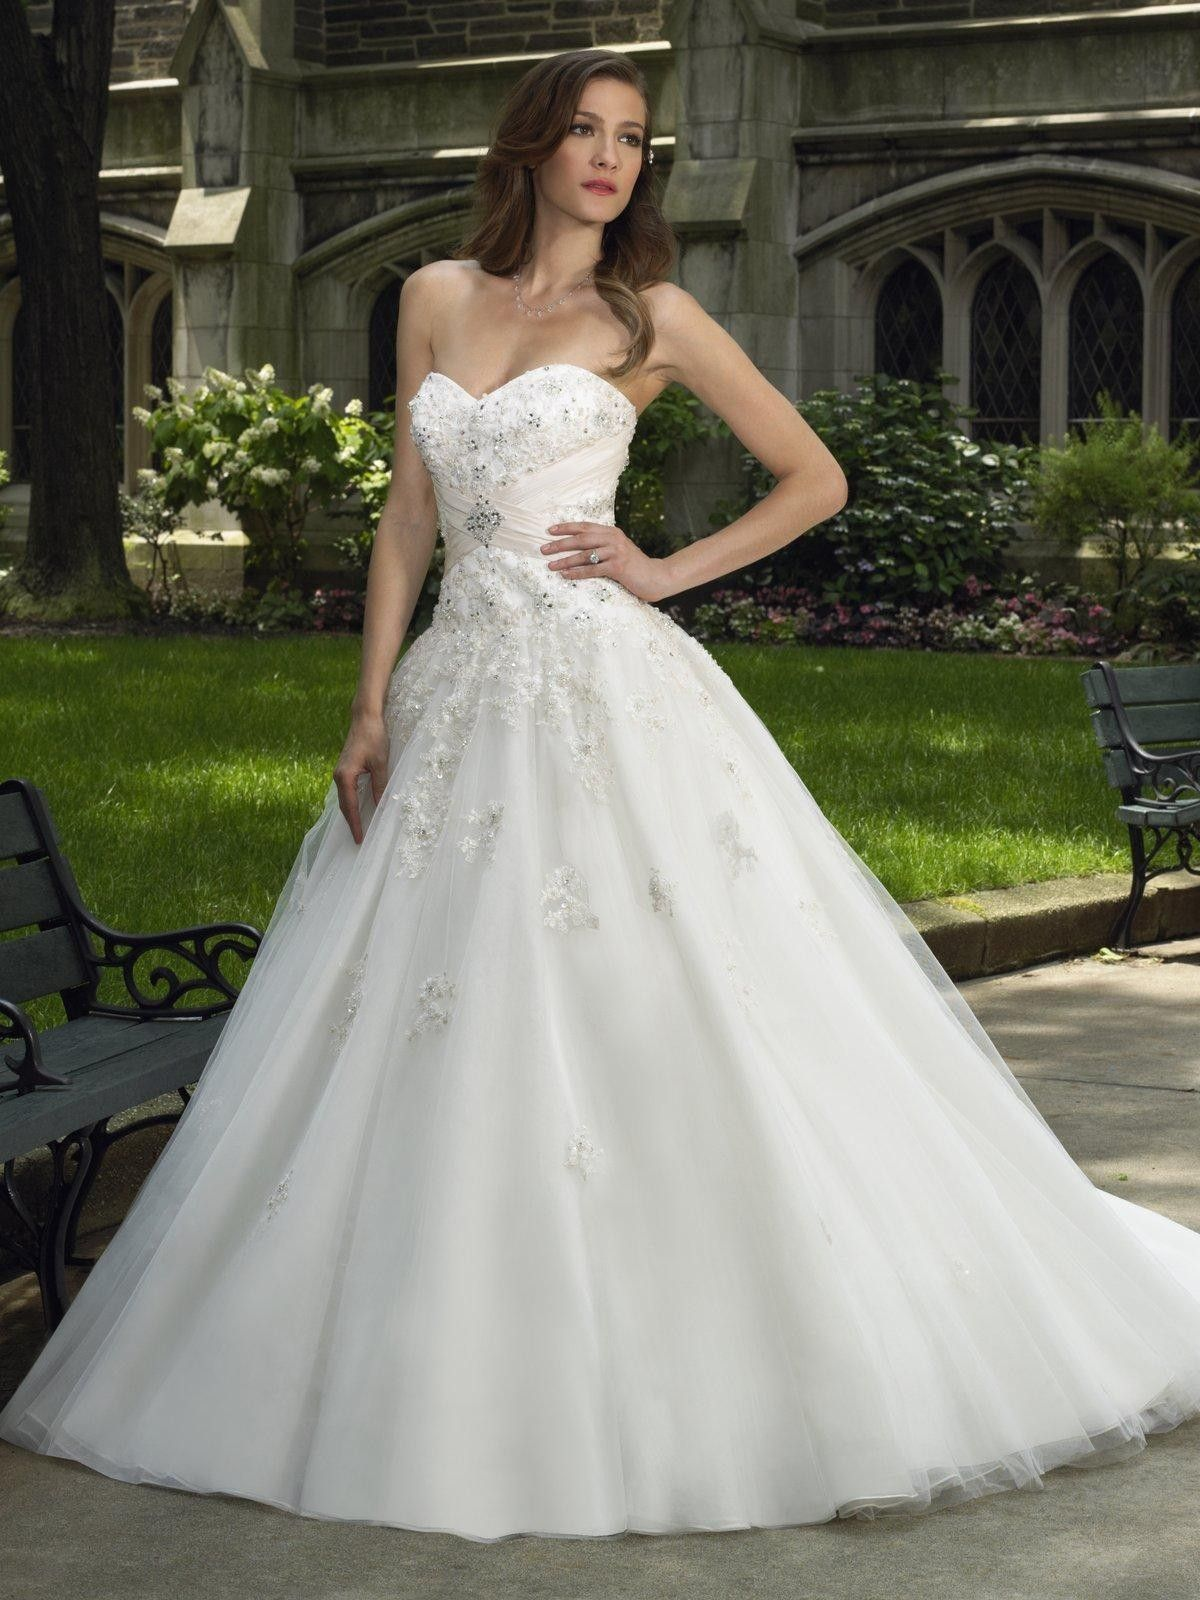 sweetheart wedding dresses tulletaffeta sweetheart ball gown wedding dress Wedding Ref